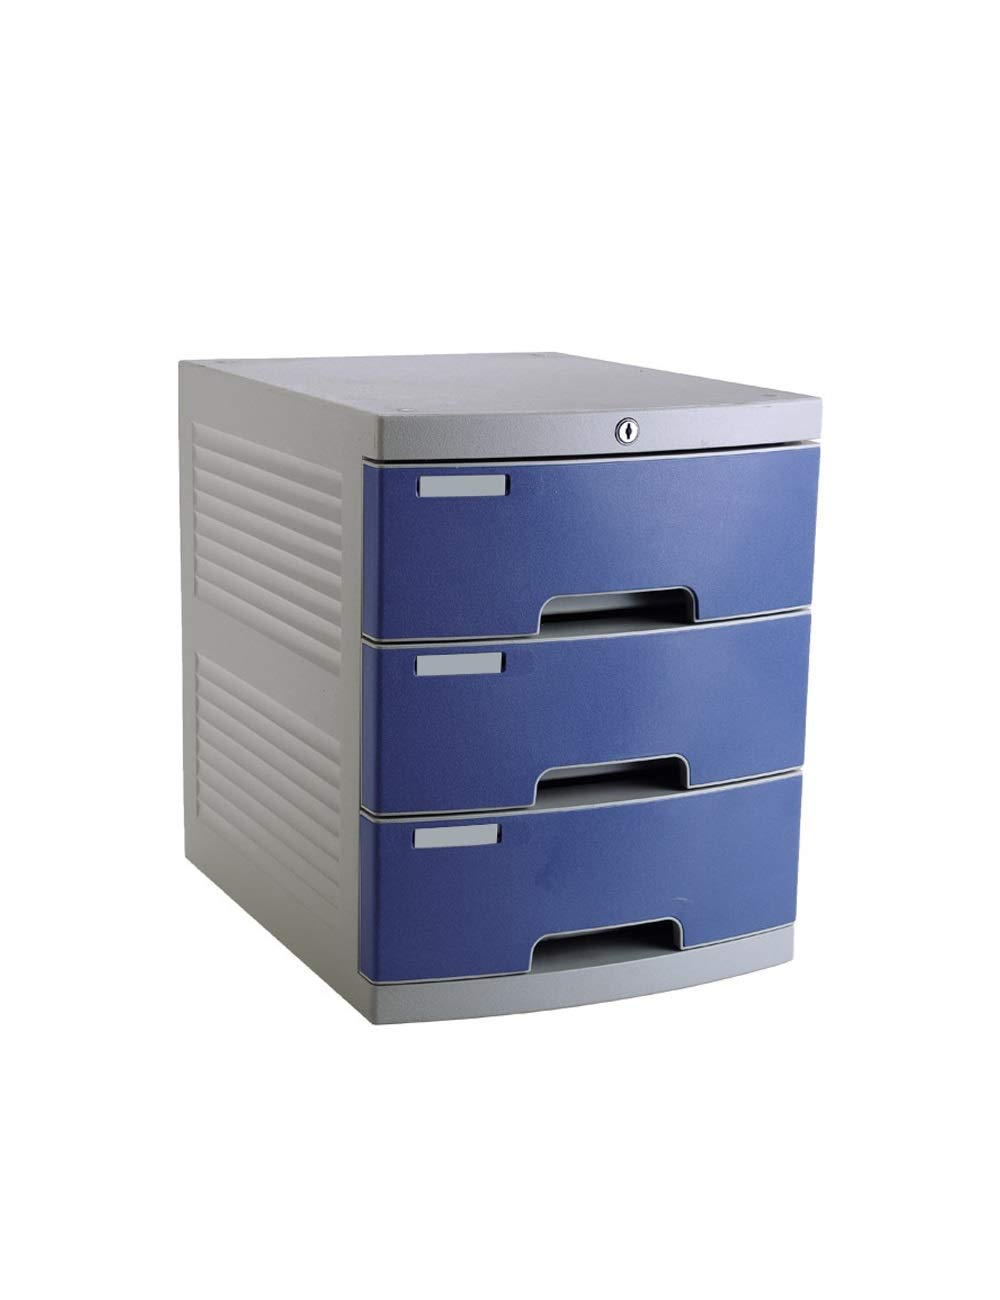 File Cabinet Office Desktop Drawer Type File Manager Stationery Cabinet 3 Layers A4 Plastic Data Cabinet Storage Box Storage Filing cabinets